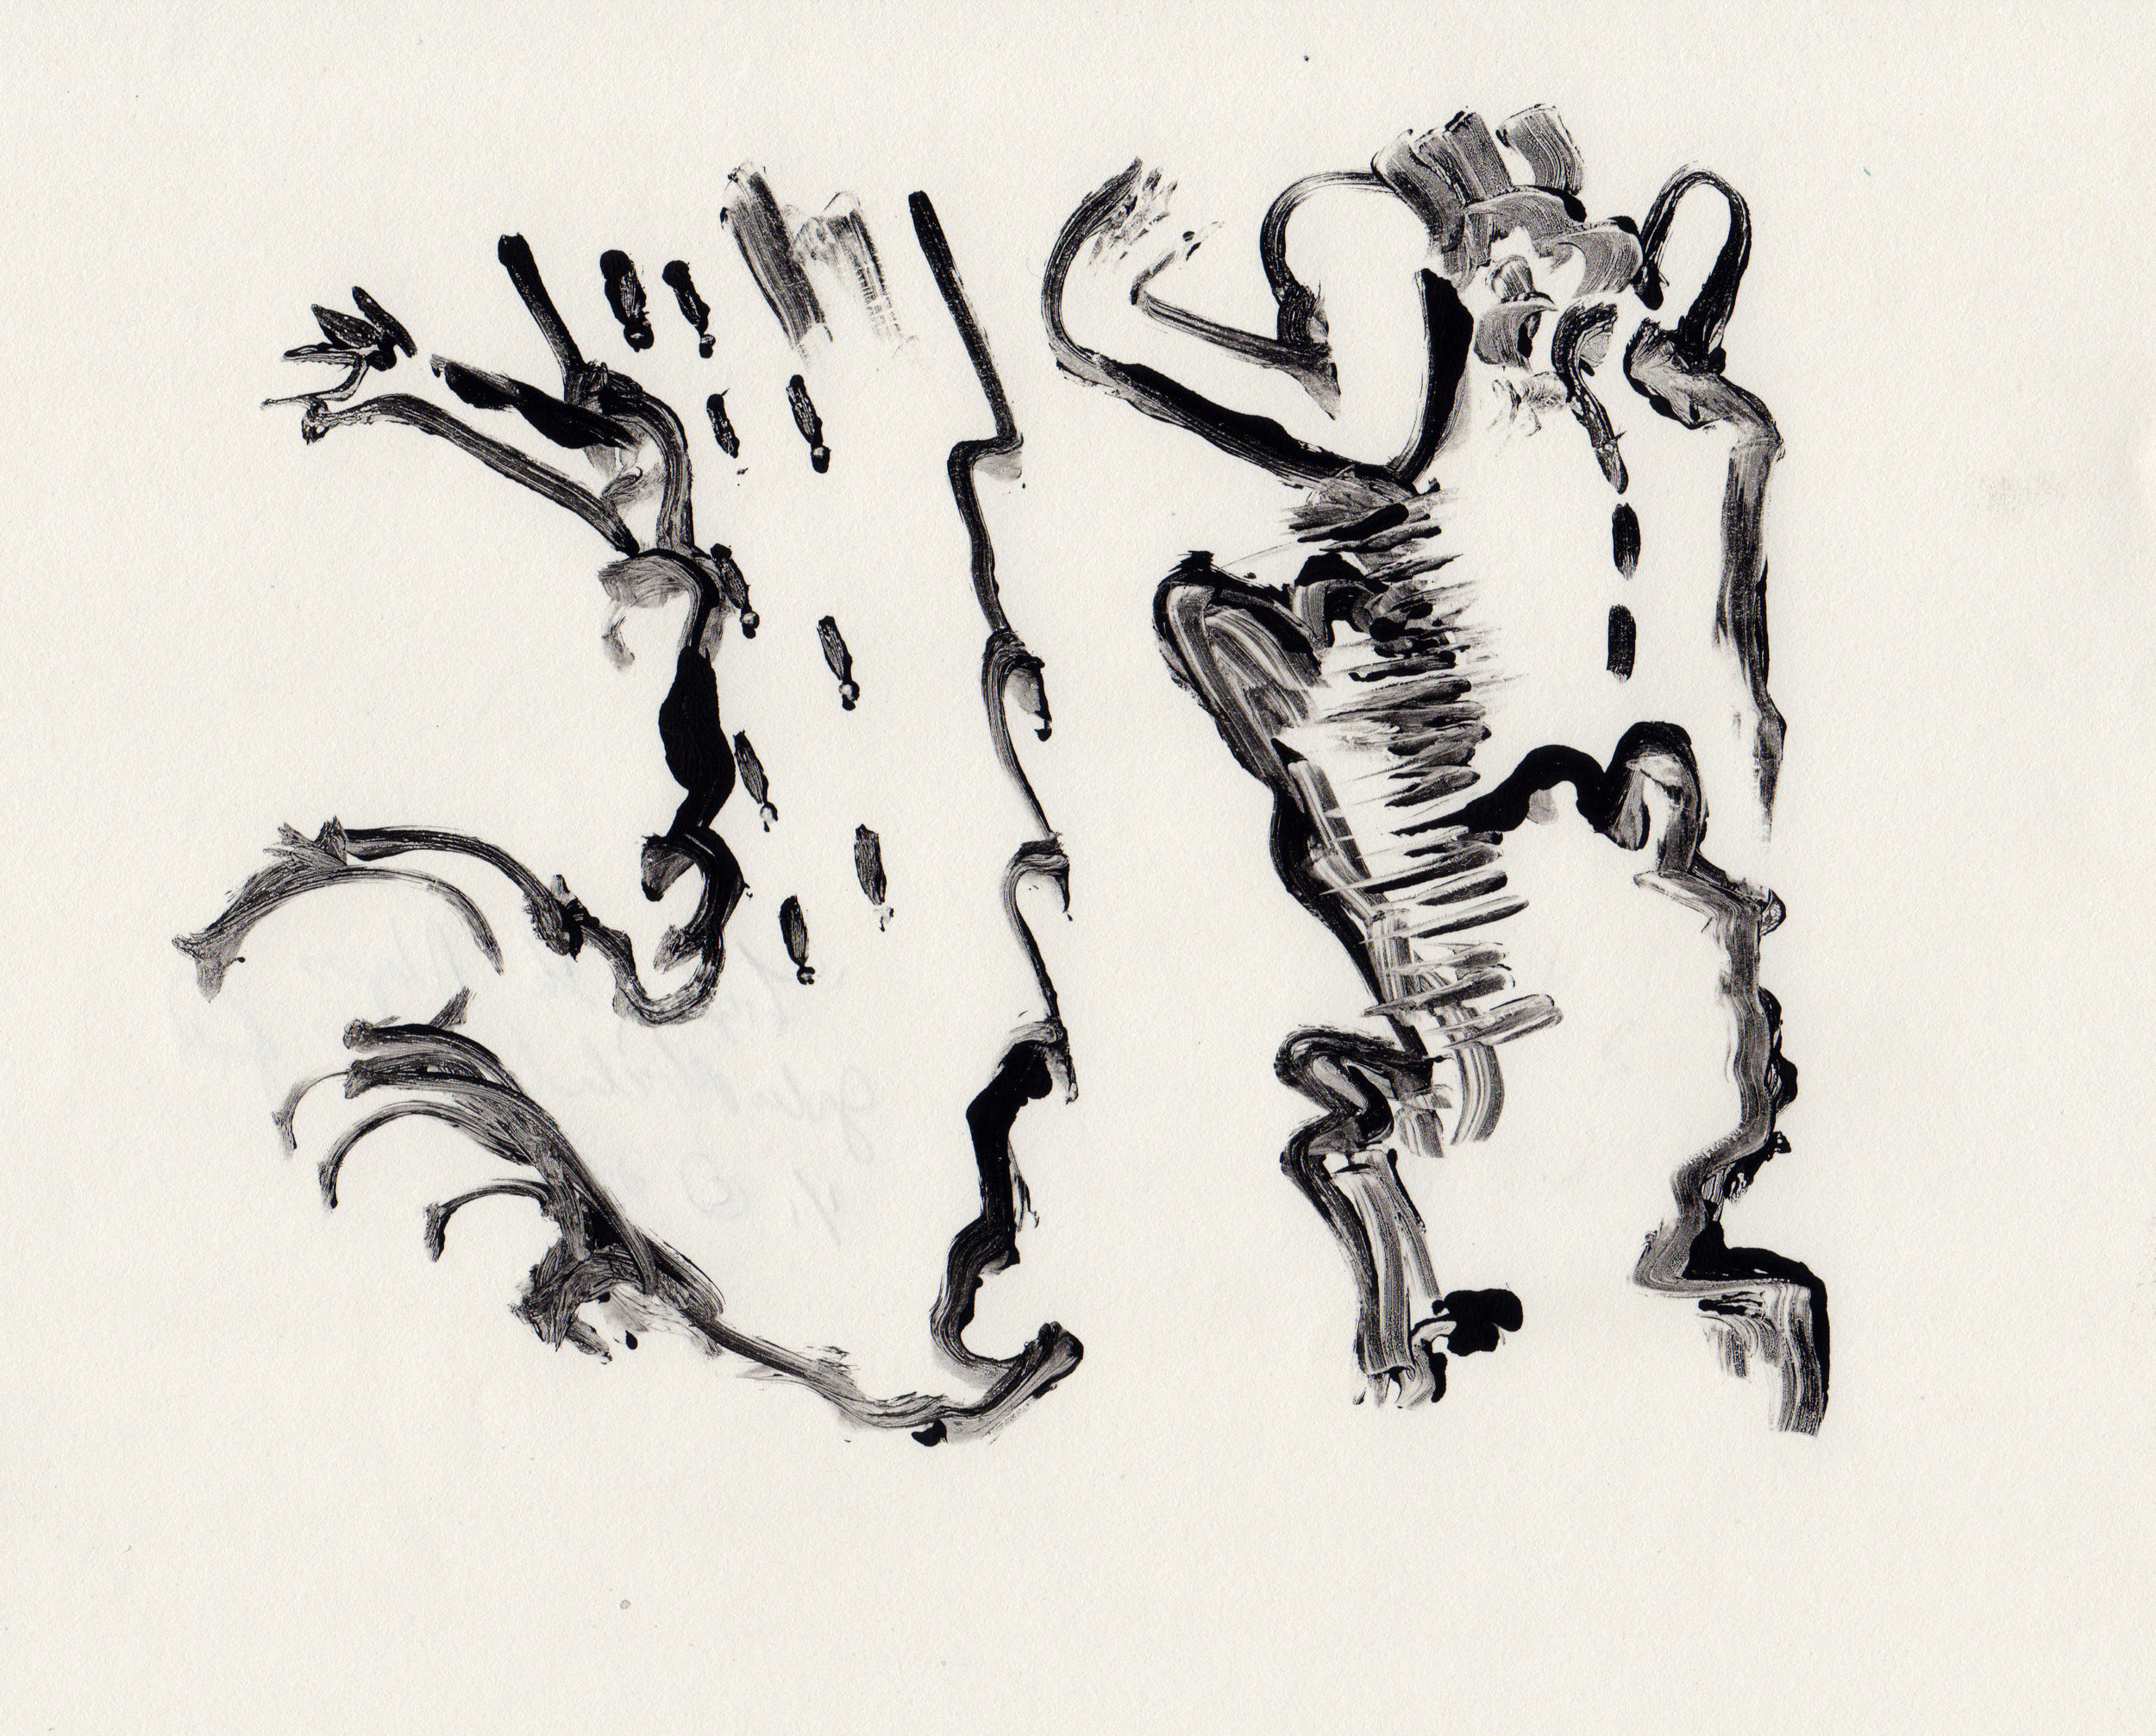 Fighting the Abyss, 2014, gelatin monotype, 10x9 inches